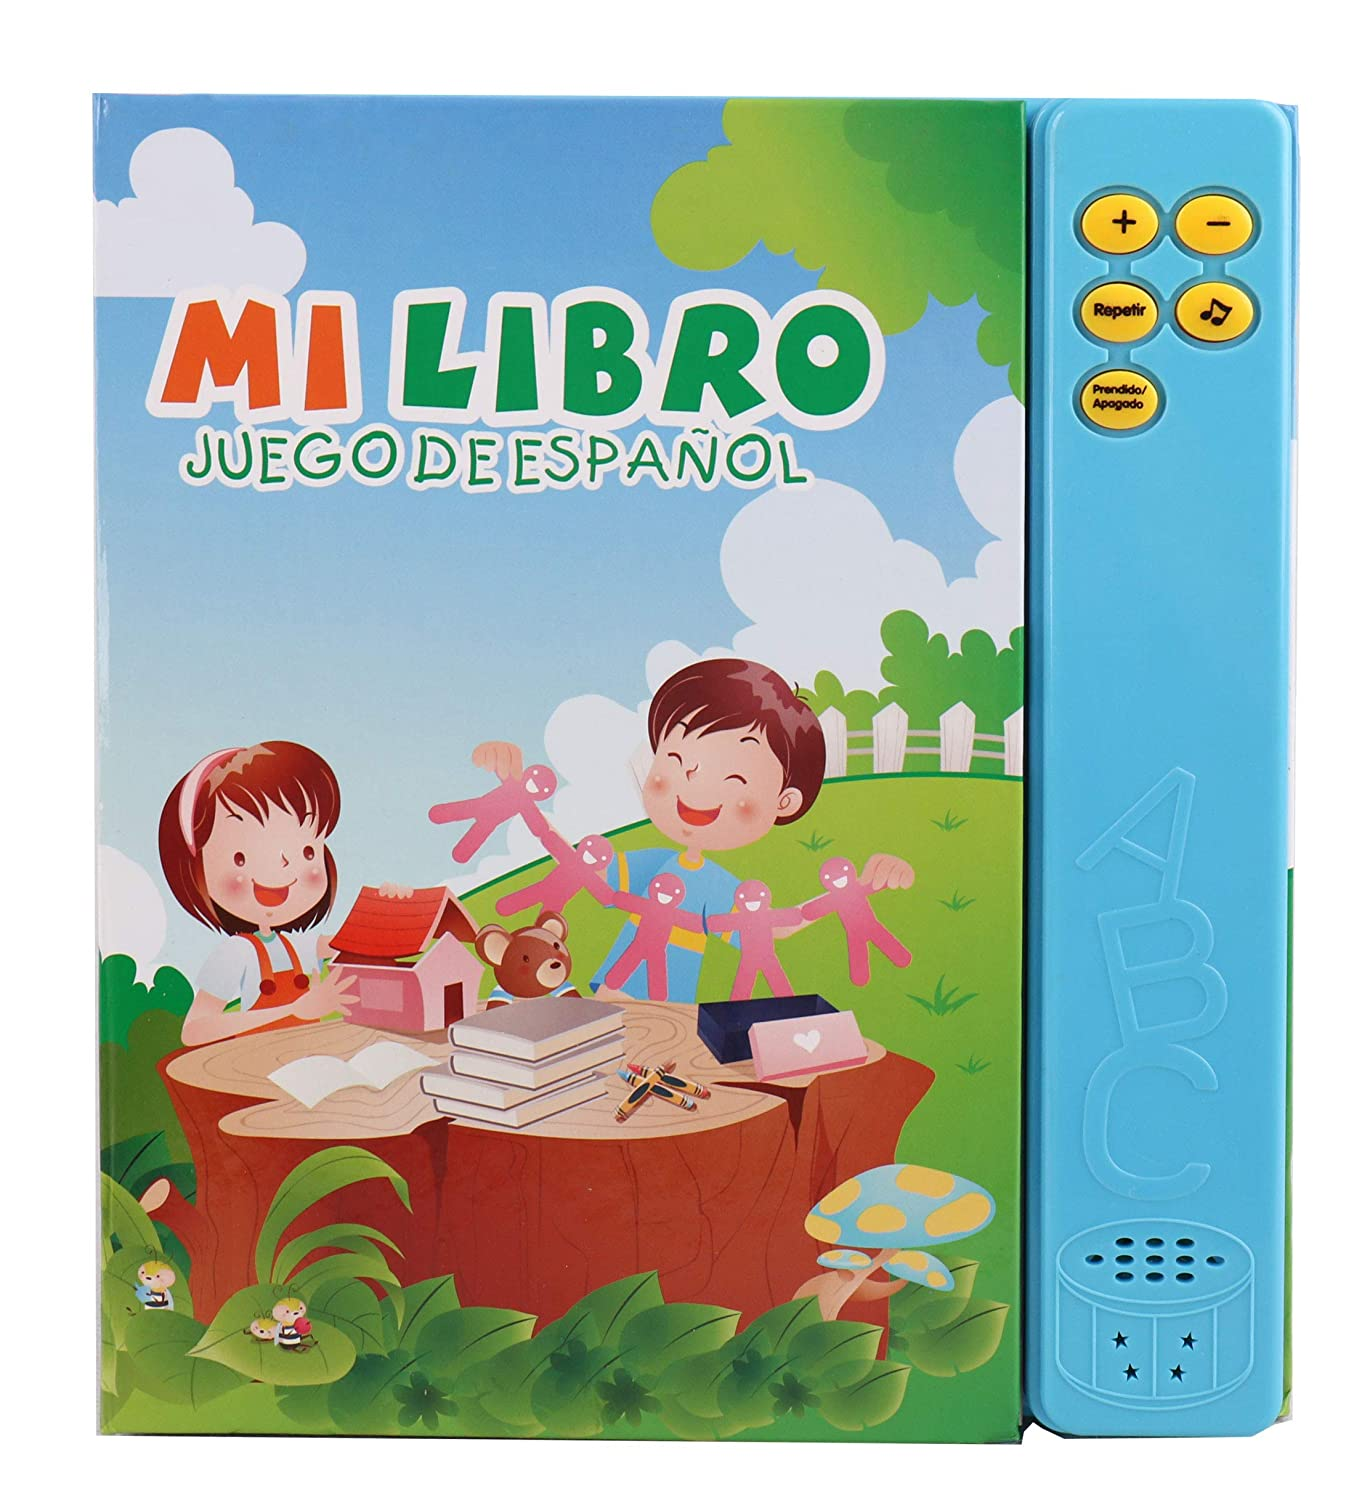 Pasaca Toys Kids Learning Book Libro de Juguetes en Españal with 6 Learning Game Learning ABC Spelling Españal Juguetos Blue